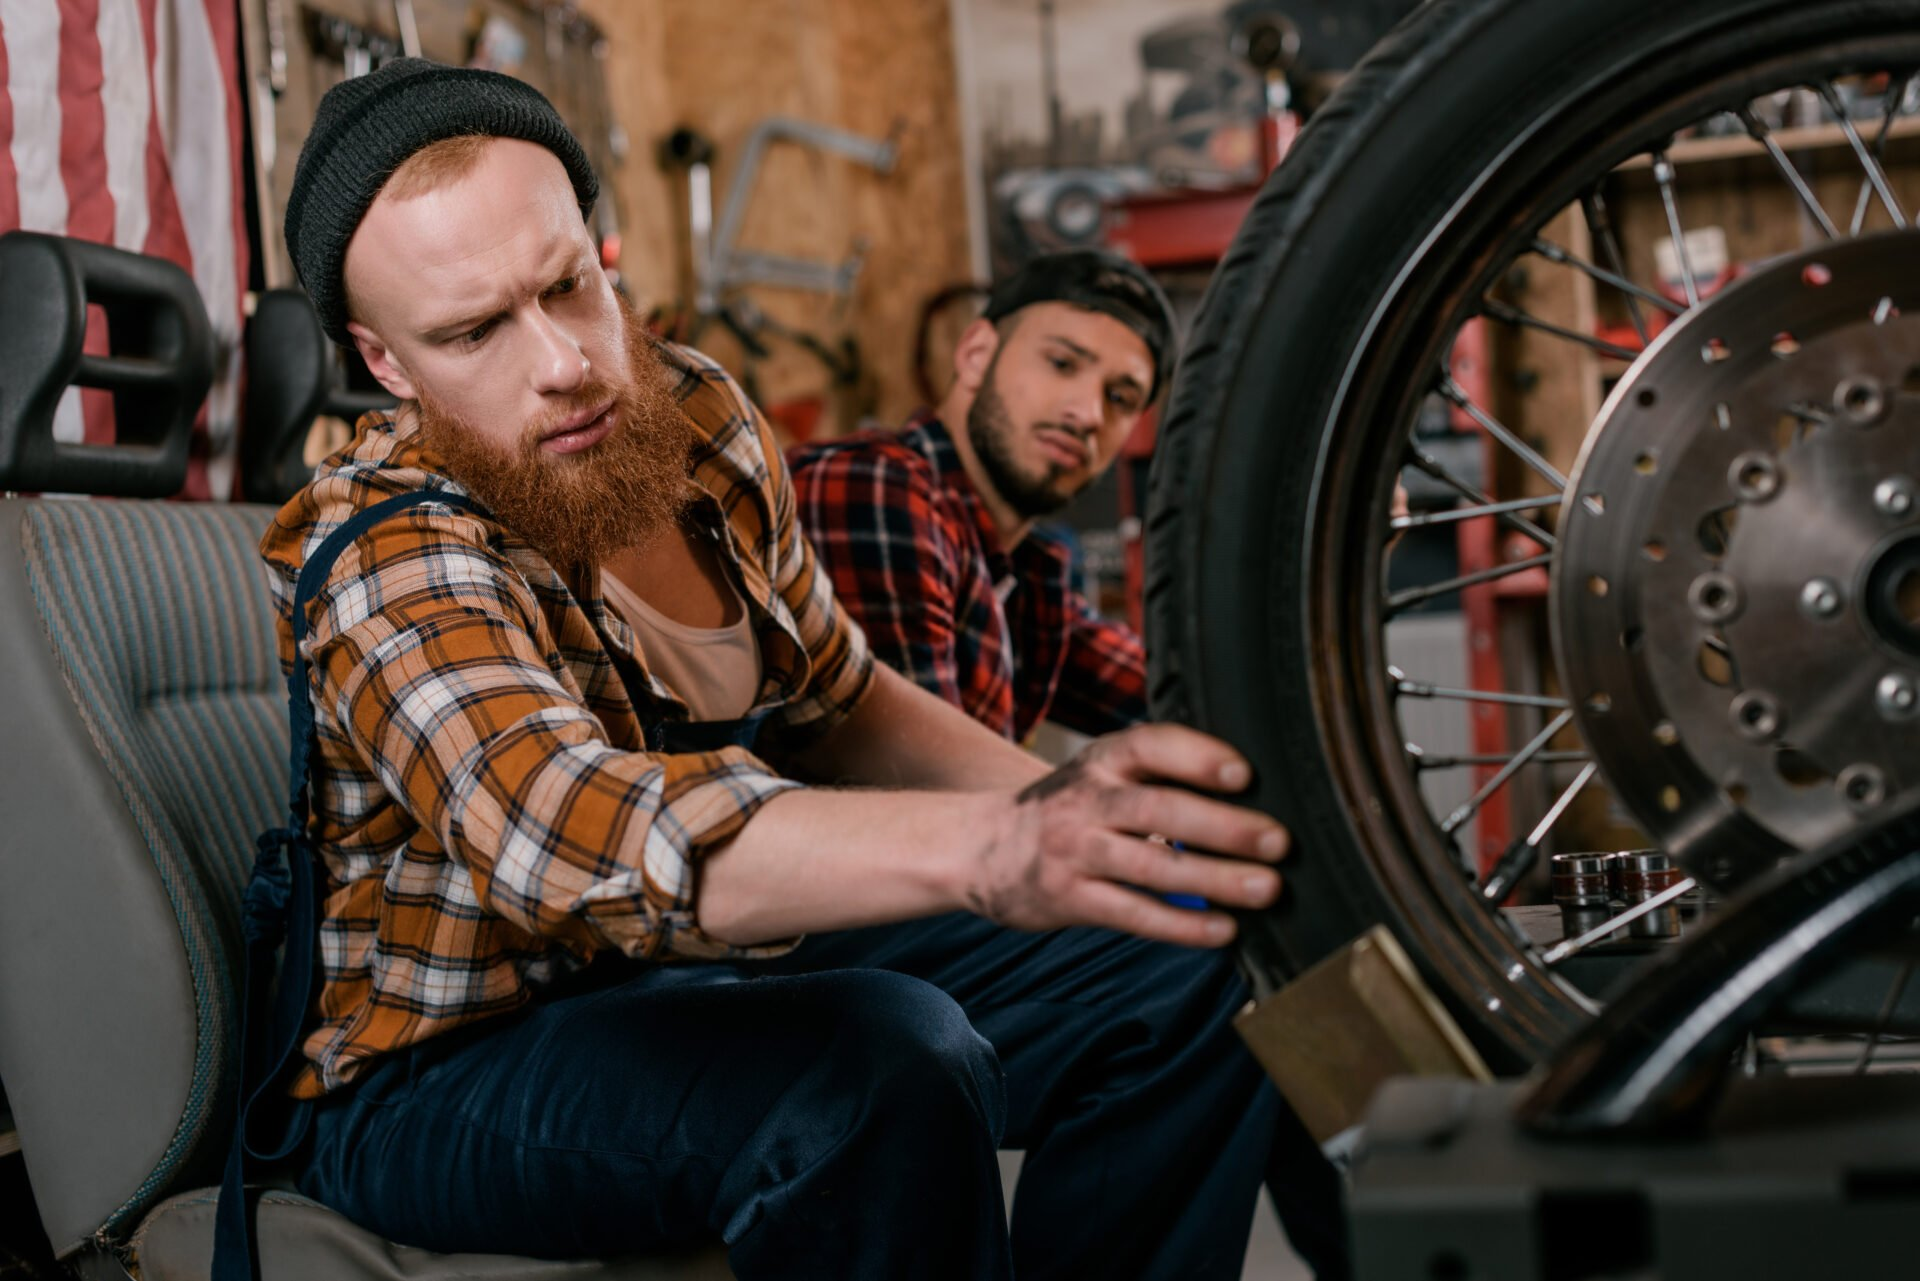 Handsome redheaded man fixing a bike in the shop